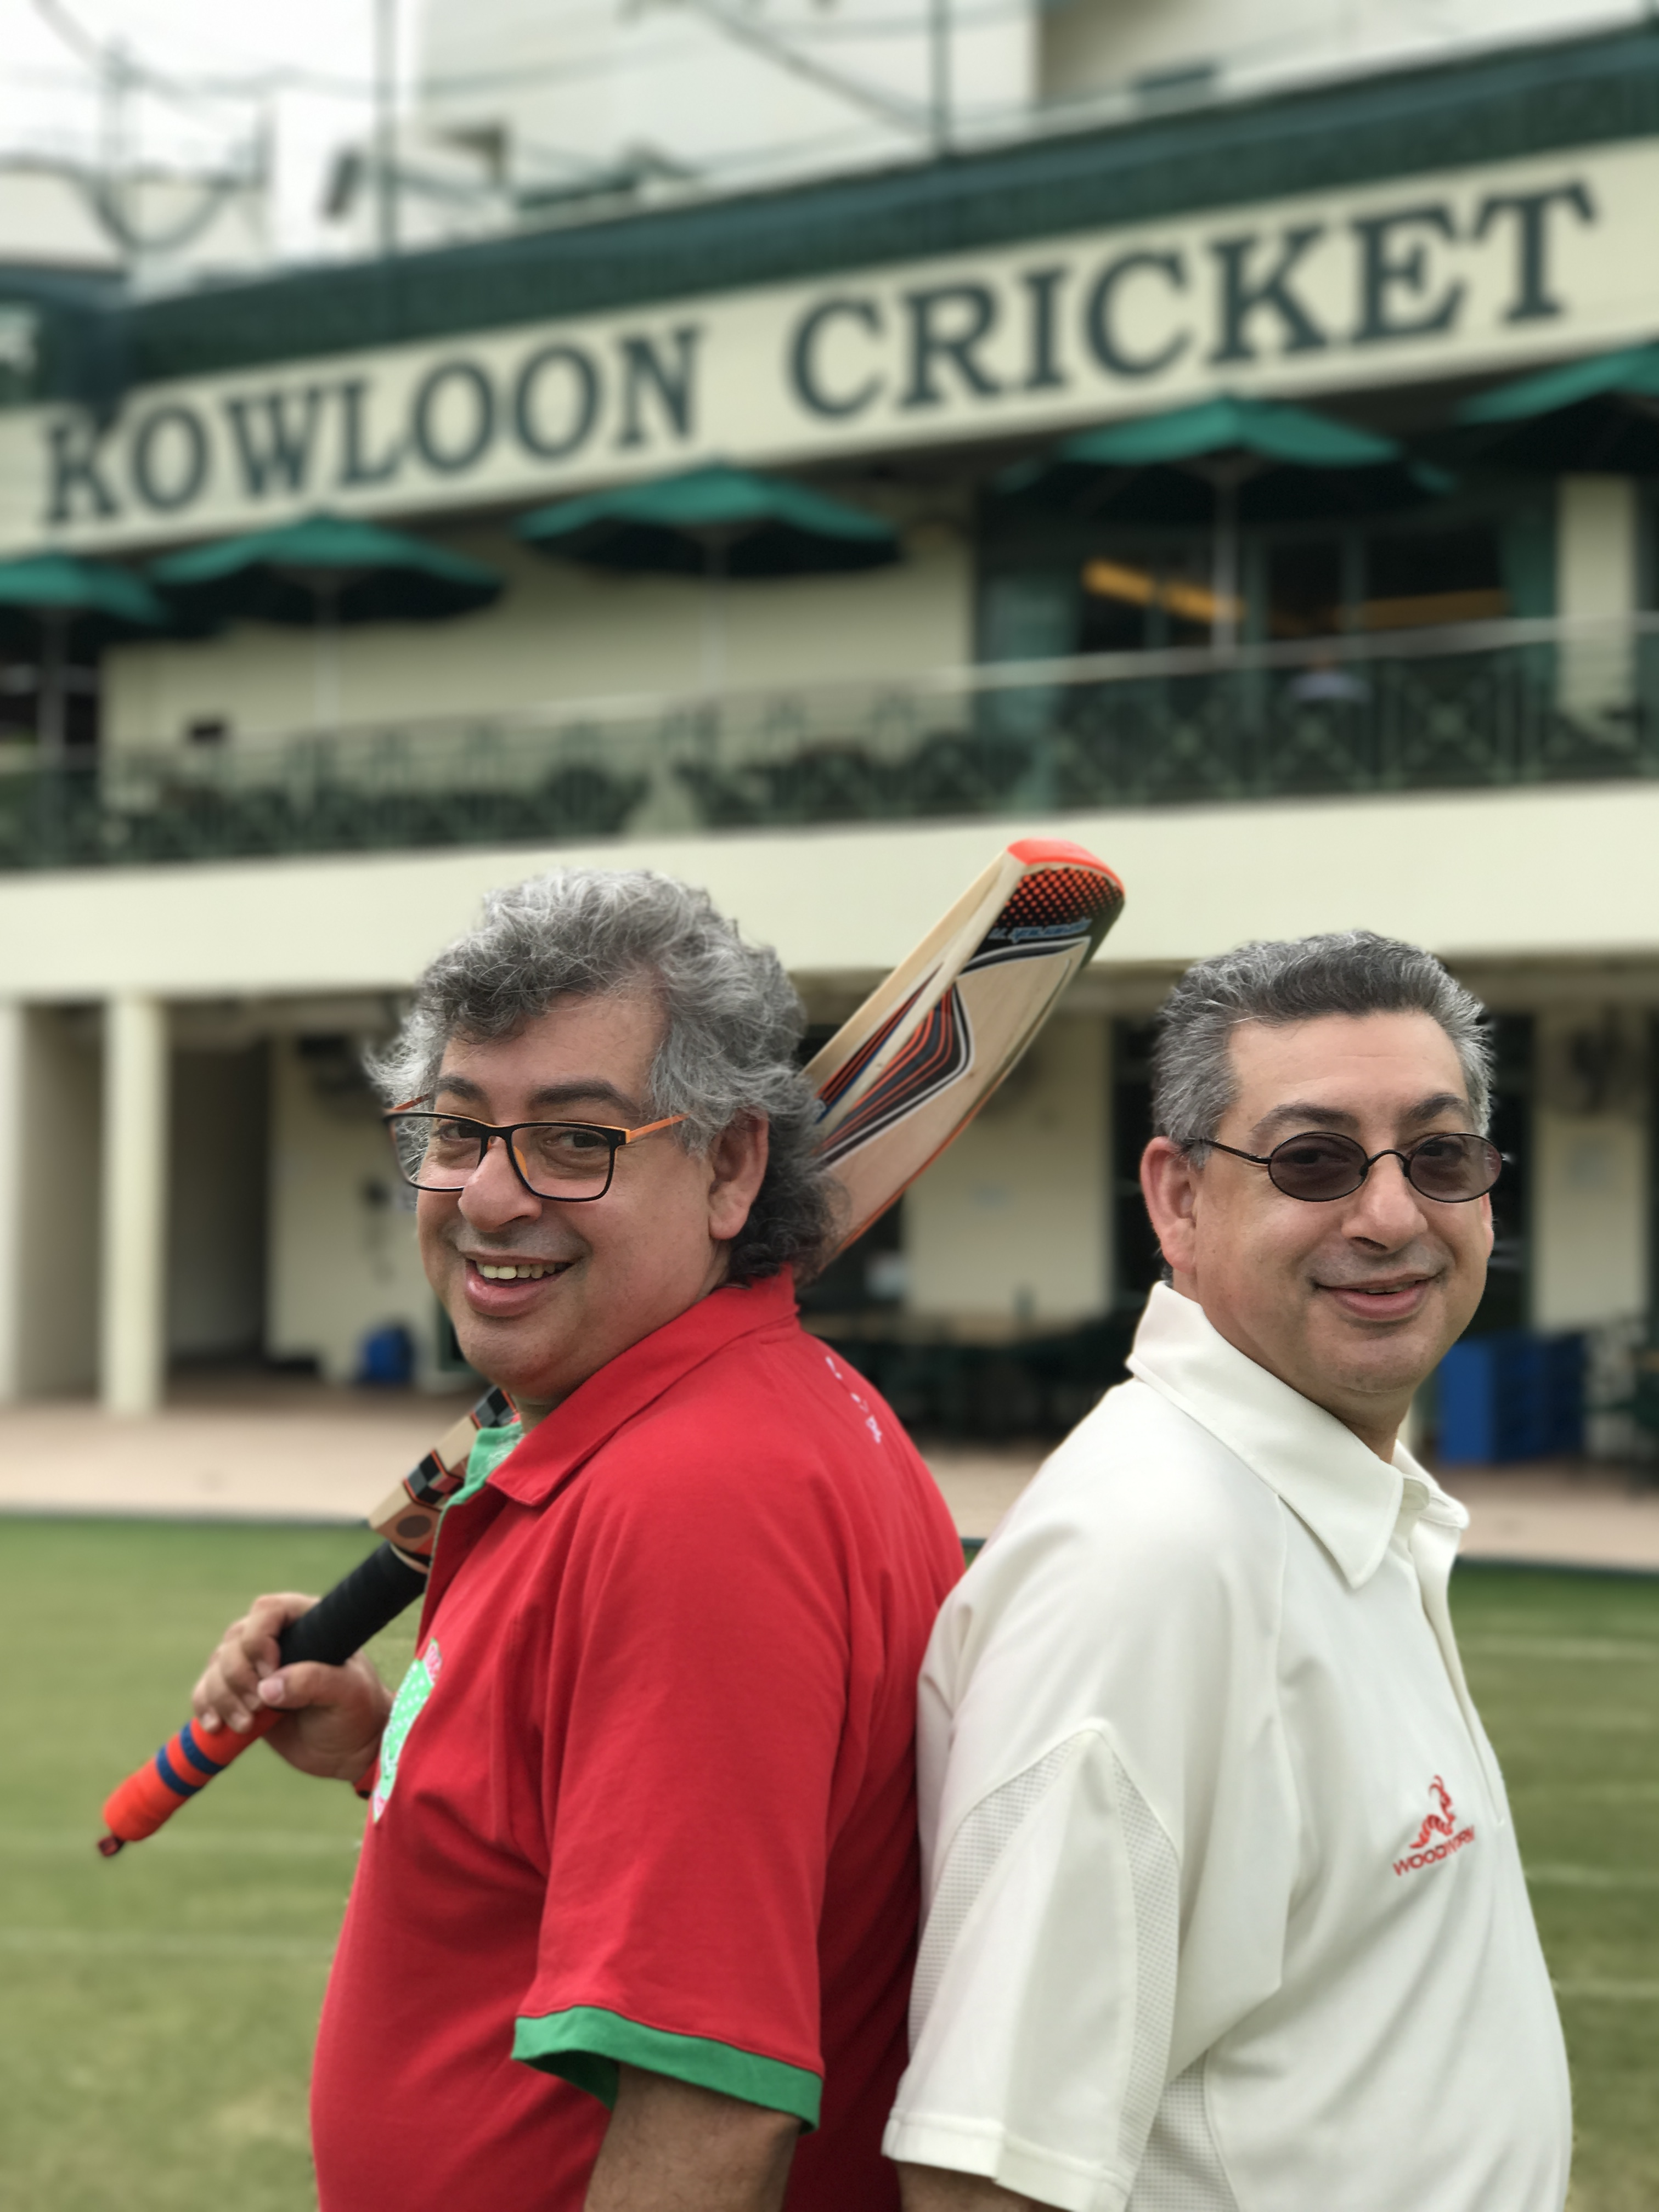 "Twin Parsi brothers Shiroy (L) and Shiraz (R) Vacha, 53, pictured at the Kowloon Cricket Club, where Shiroy is head of cricket, on June 26, 2017. Shiroy: ""We consider ourselves 100% Parsi and 100% Hong Kong. This place is uniquely multicultural. A lot of people leave and always try to find a way to get back. I've never had a problem being accepted. If people swear at me in Cantonese, I swear back at them in Cantonese. Then they accept me very seriously."" Shiraz:  ""This is home. This is where we grew up. We don't know any other place besides Hong Kong. Anyone that's grown up here, or was born in Hong Kong, should always consider this as their home regardless of their ethnicity or religion or culture or whatever."""